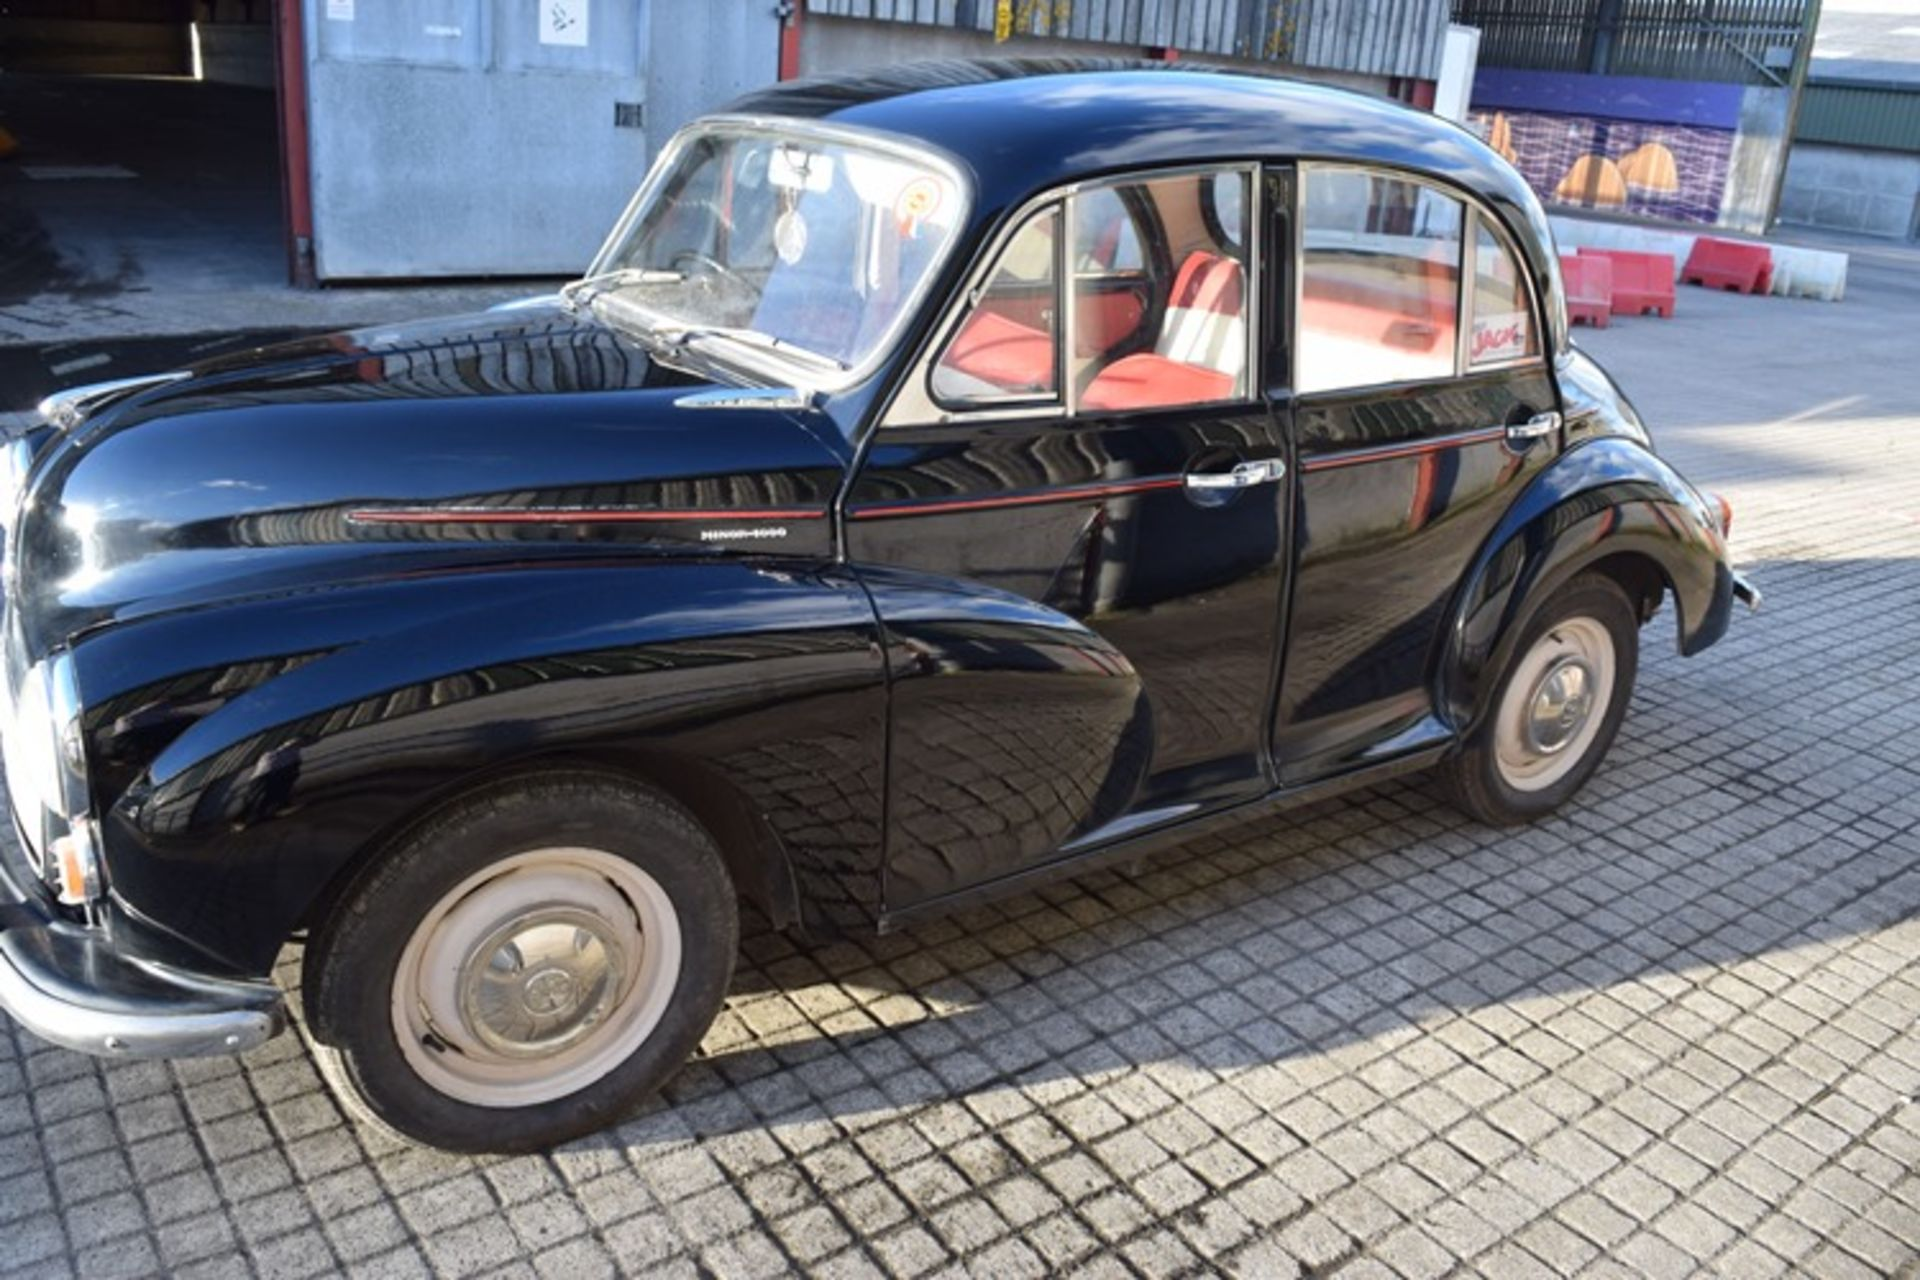 1964 Morris Minor 1000 in original black. The car has been restored with new flooring and vinyl - Image 15 of 16